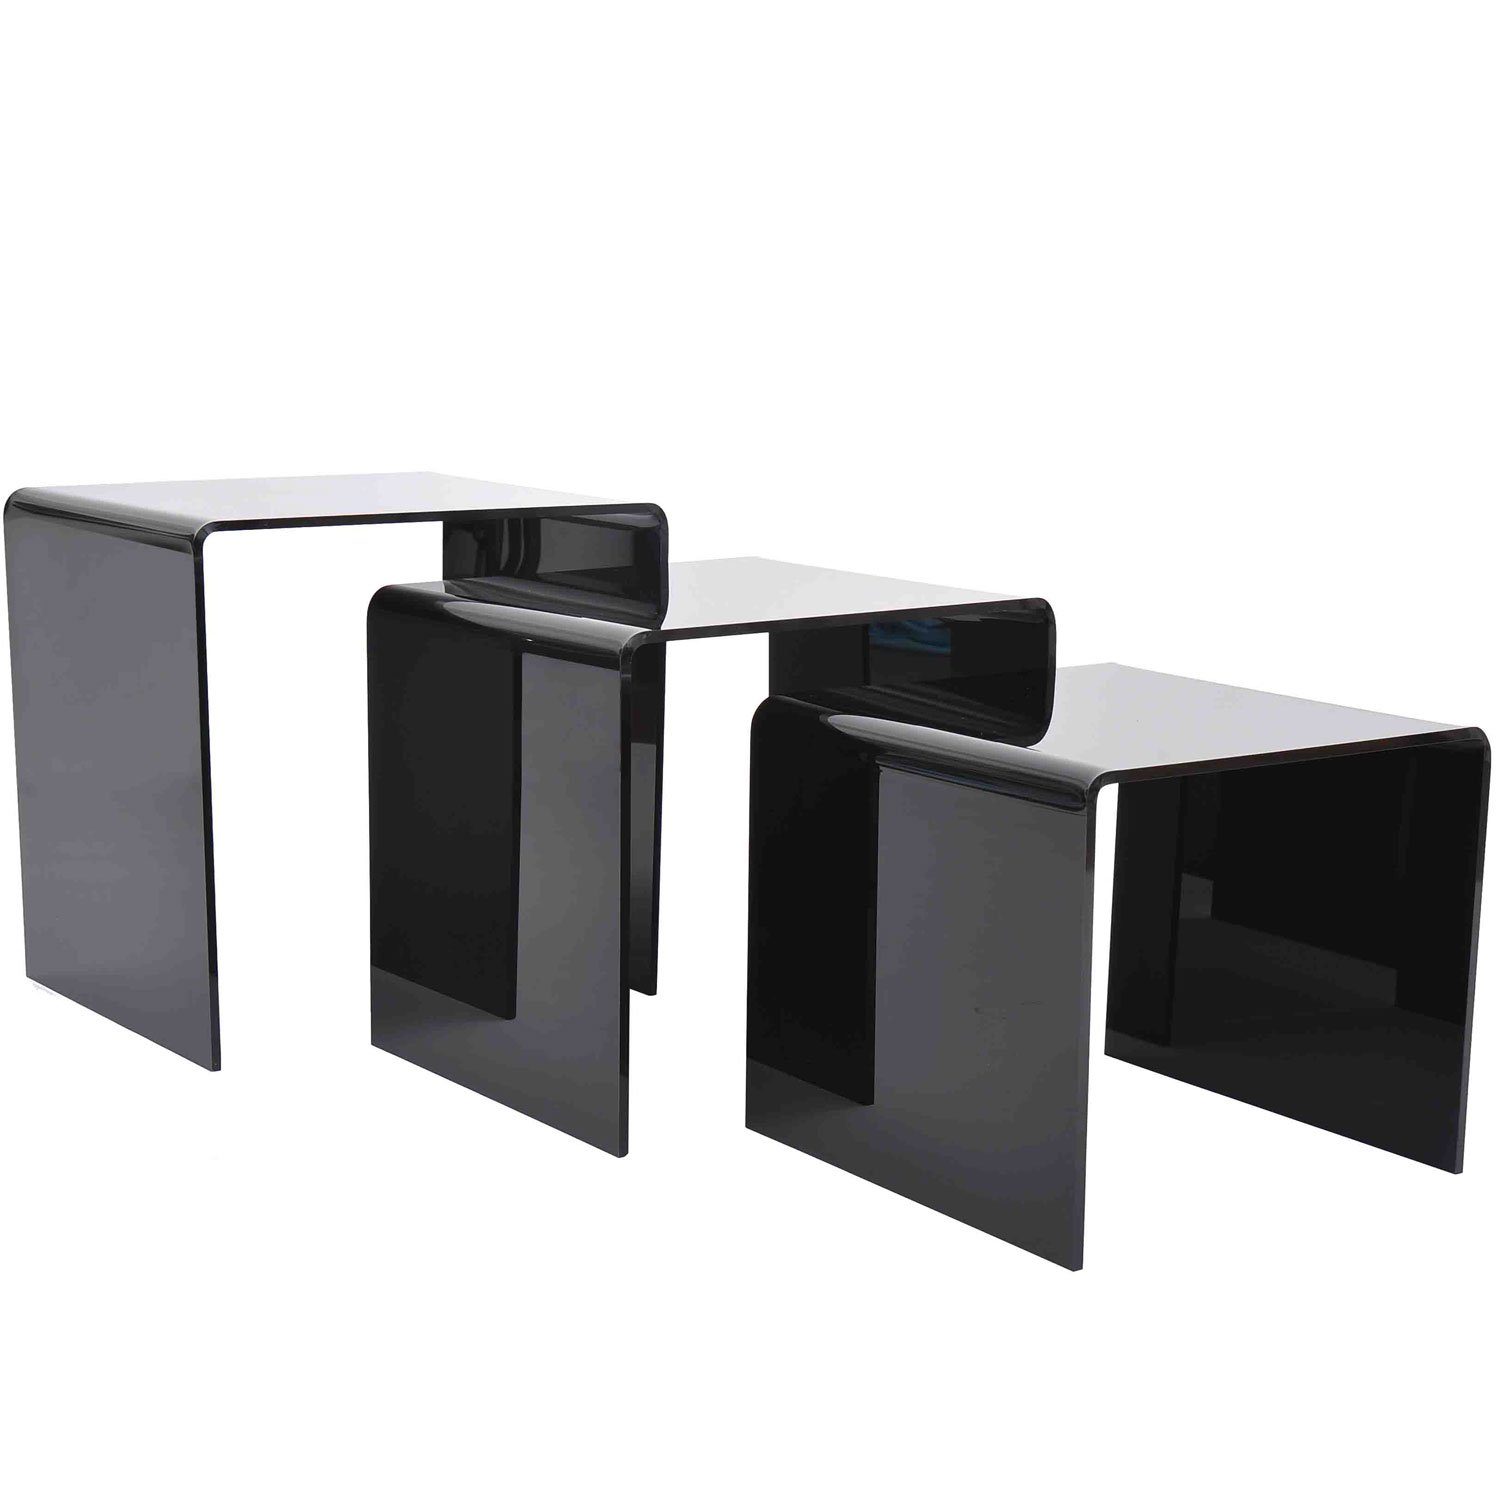 tinkertonk 3 Black Nesting Tables Wood Nest of 3 Tables Living